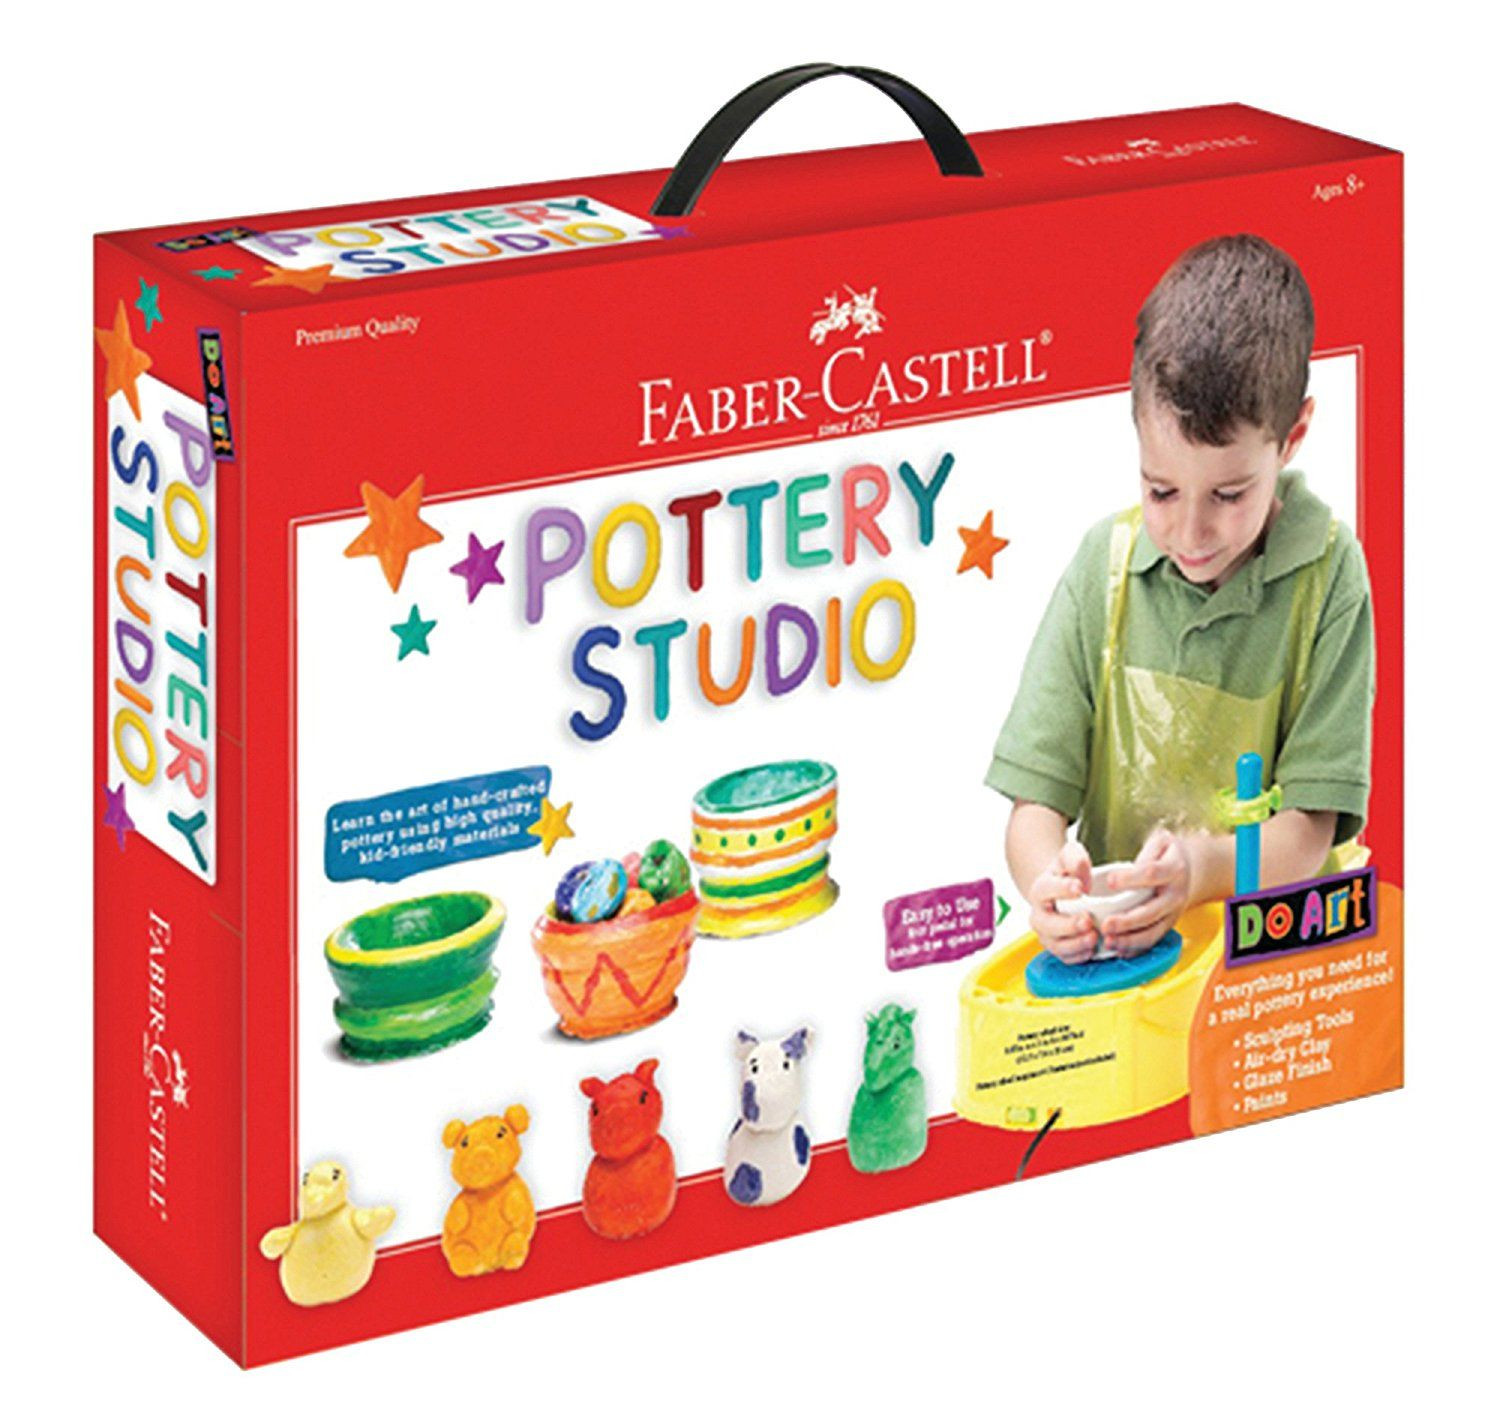 Crafts Kits For Kids  12 Best Art & Craft Kits for Kids in 2018 Kids Arts and